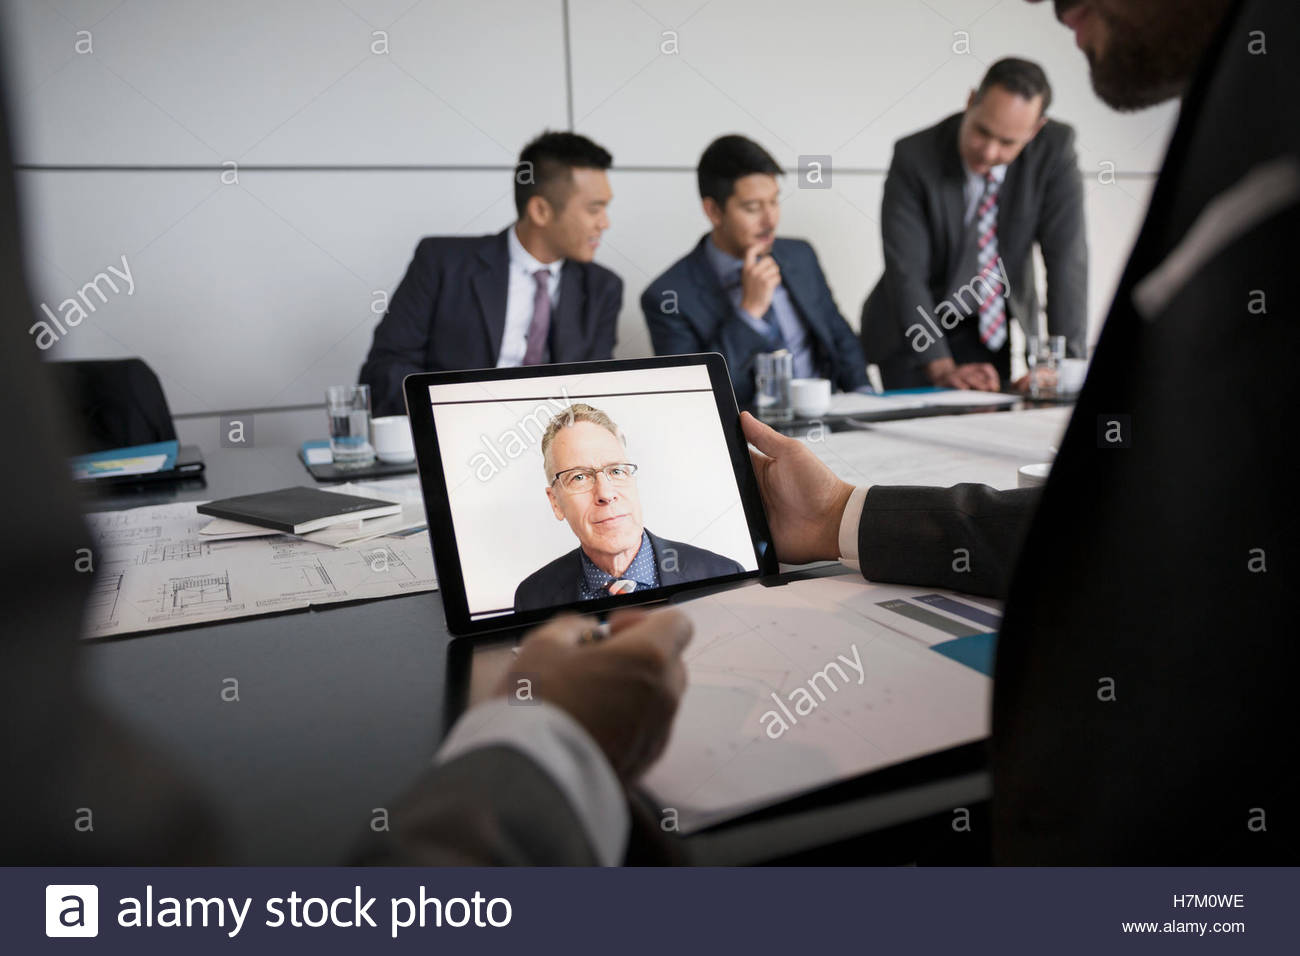 Male architect video conferencing on laptop in conference room - Stock Image